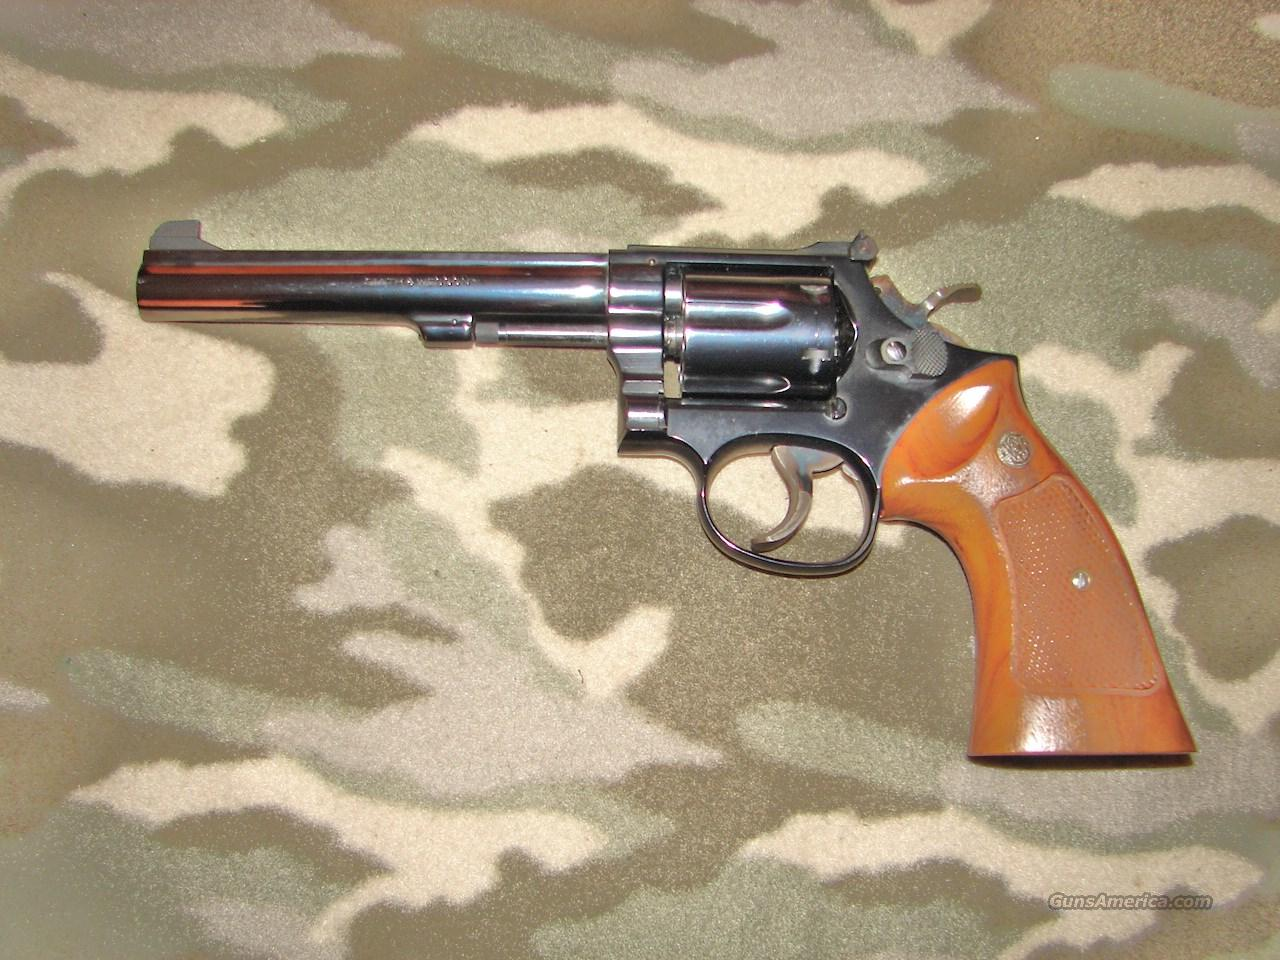 Smith & Wesson 14-4  Guns > Pistols > Smith & Wesson Revolvers > Full Frame Revolver